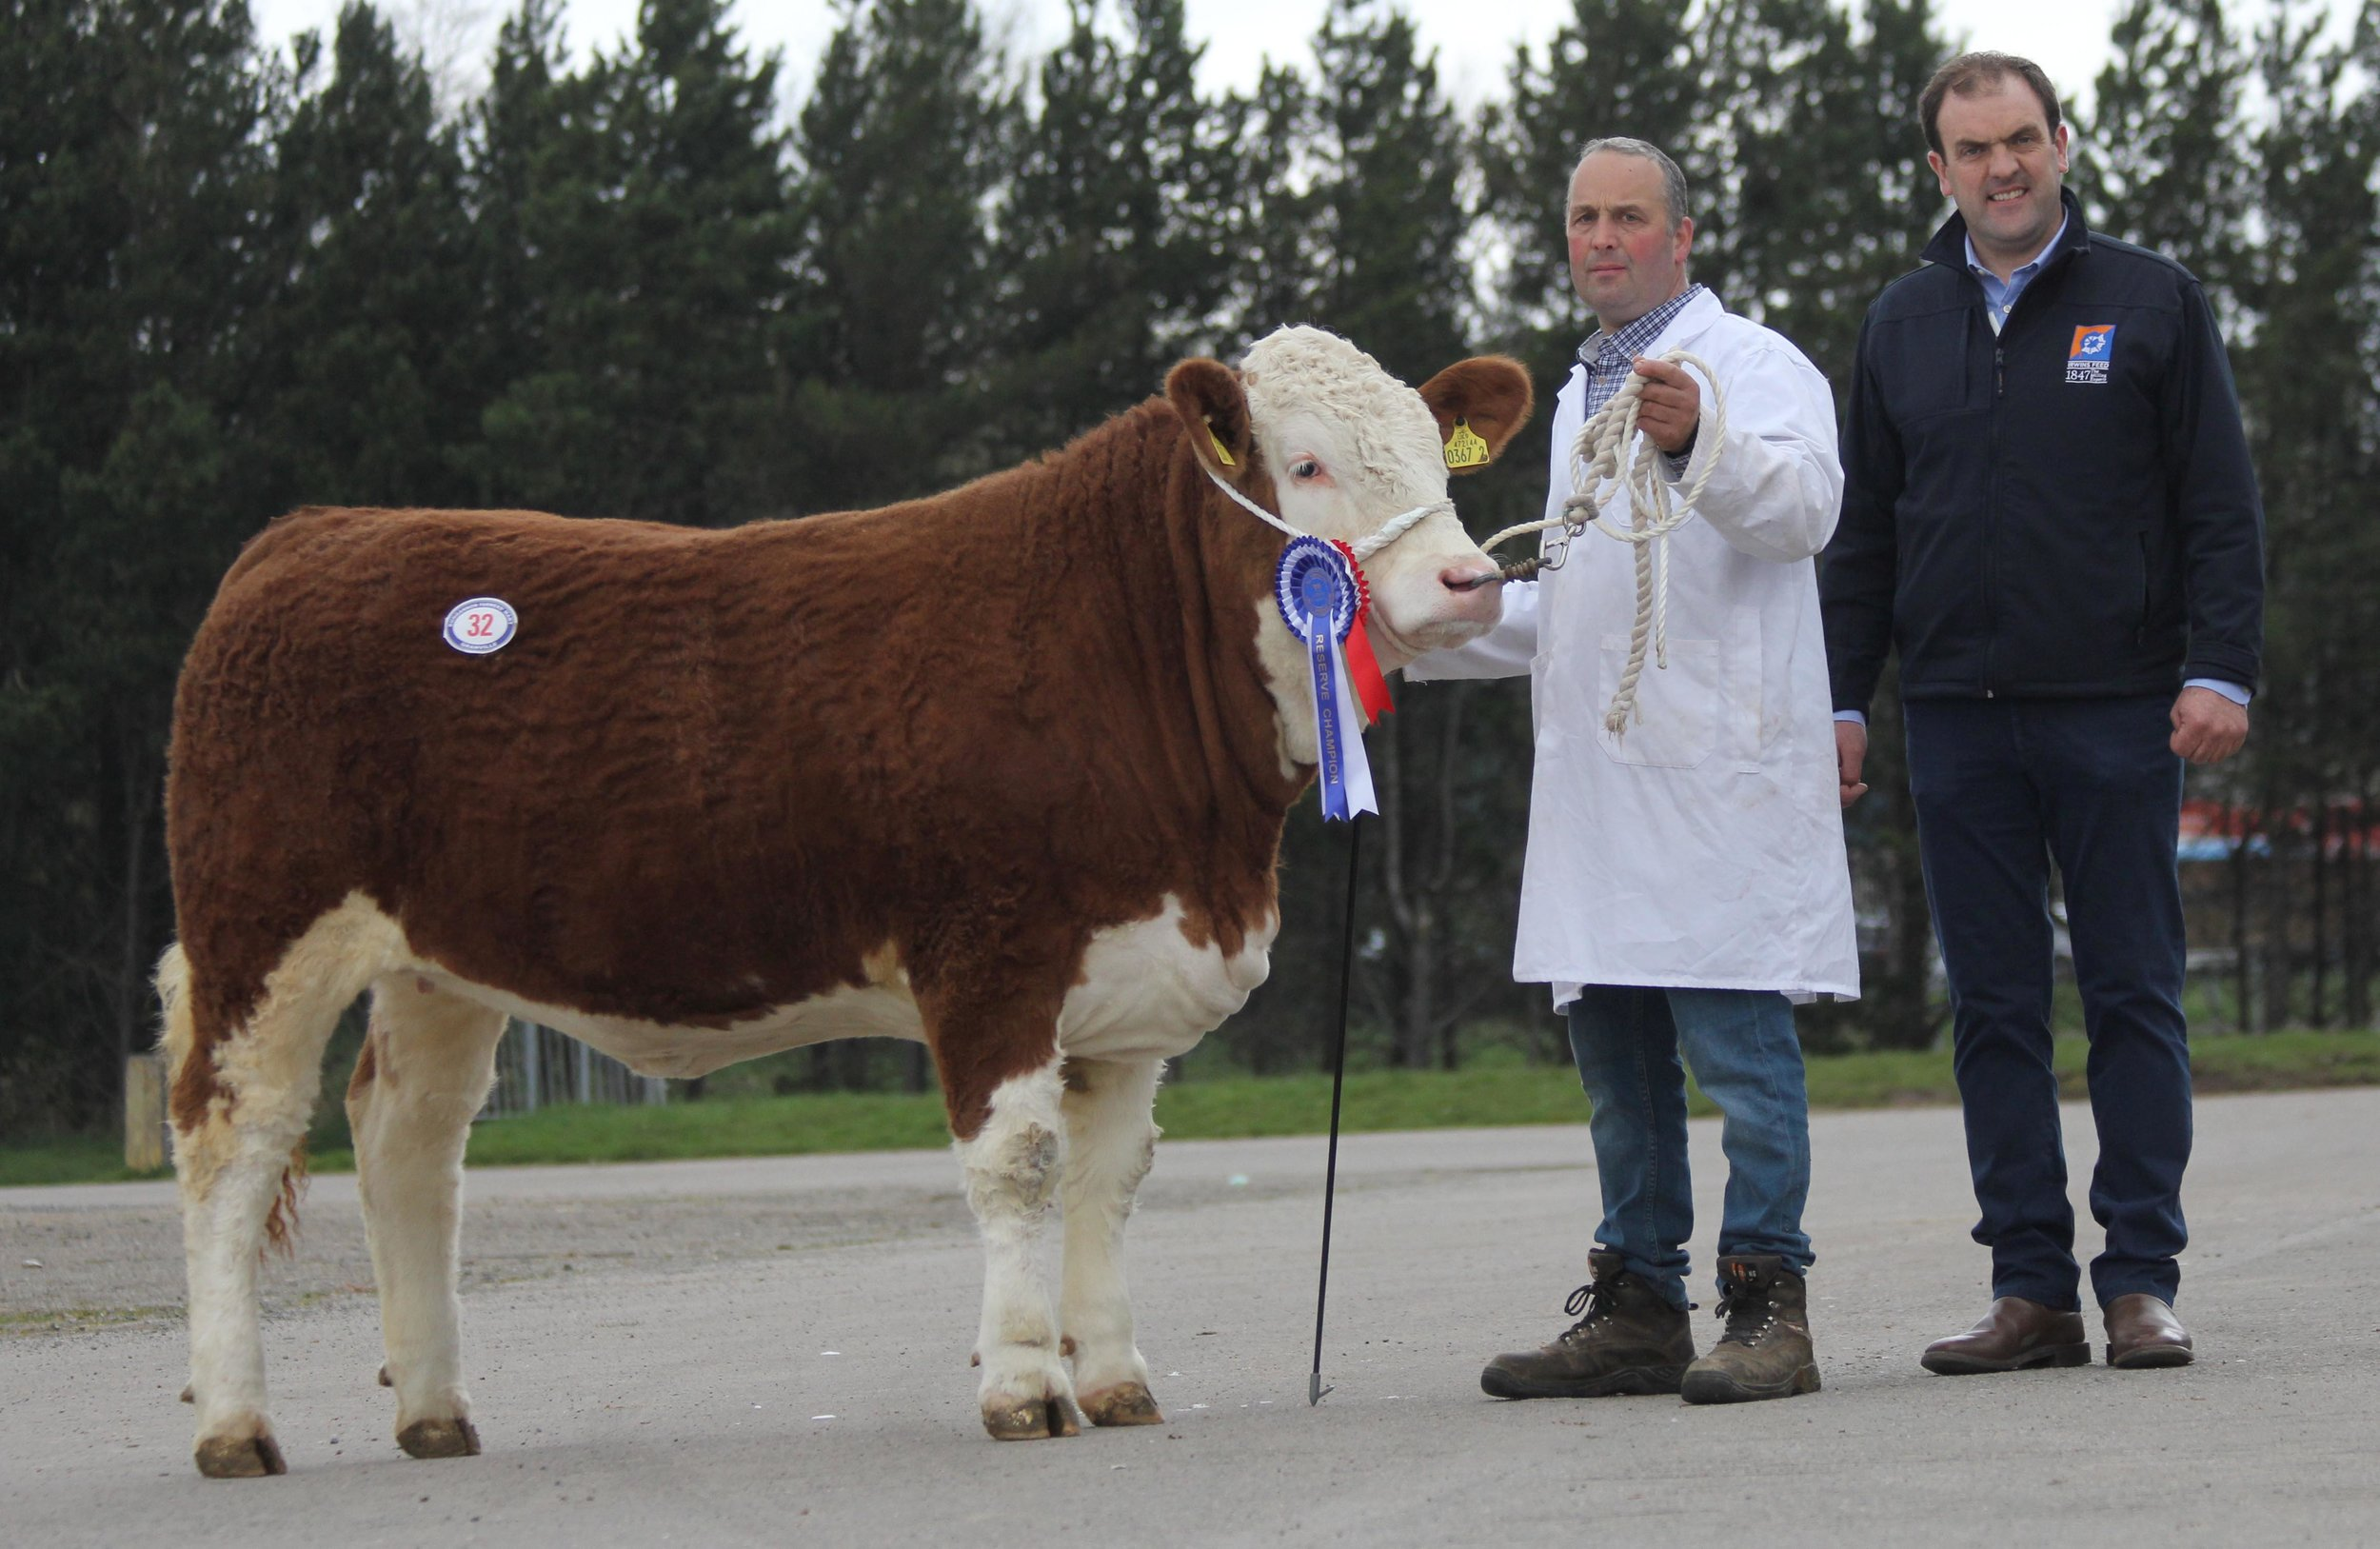 RESERVE FEMALE CHAMPION, REHALL JANE